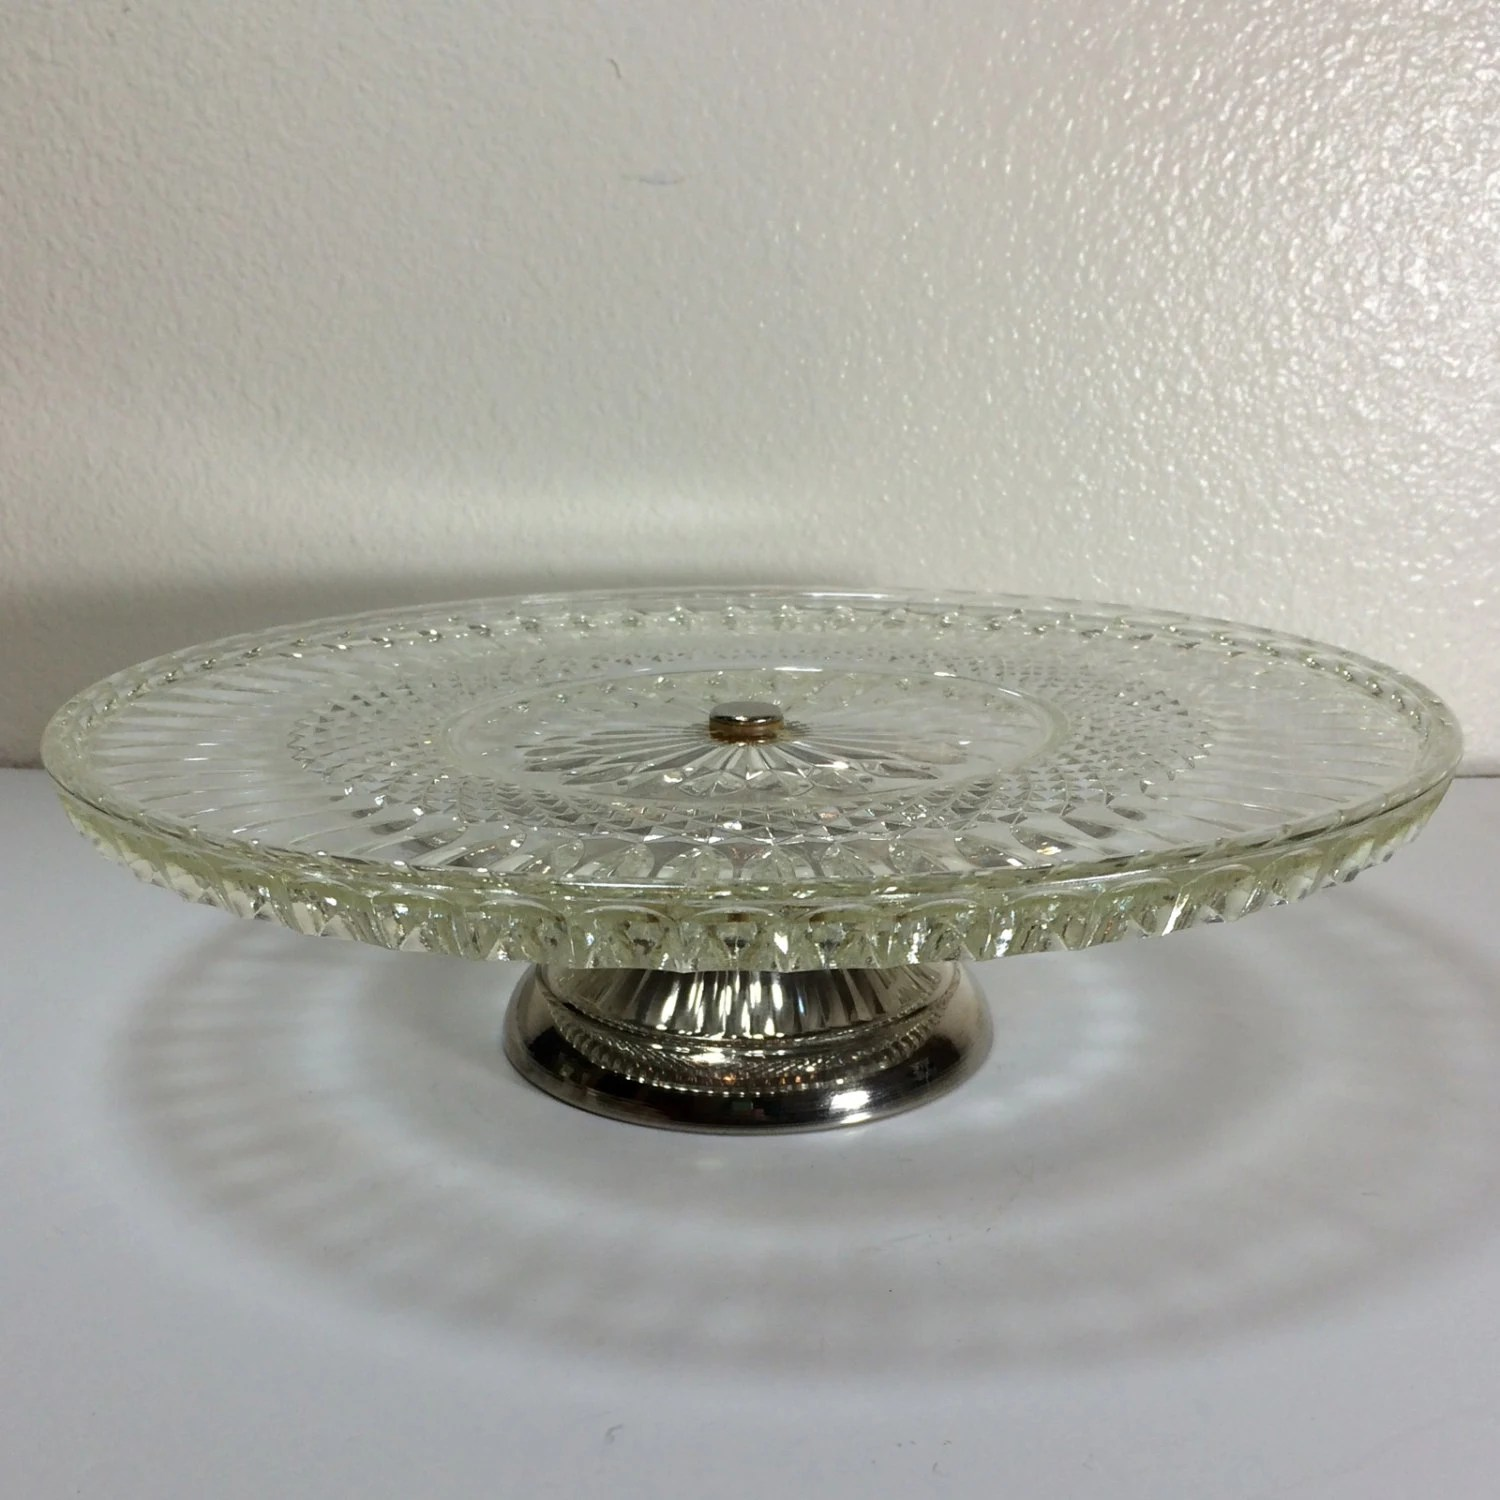 Vintage Crystal Cut Glass Cake Stand With Silver Pedestal